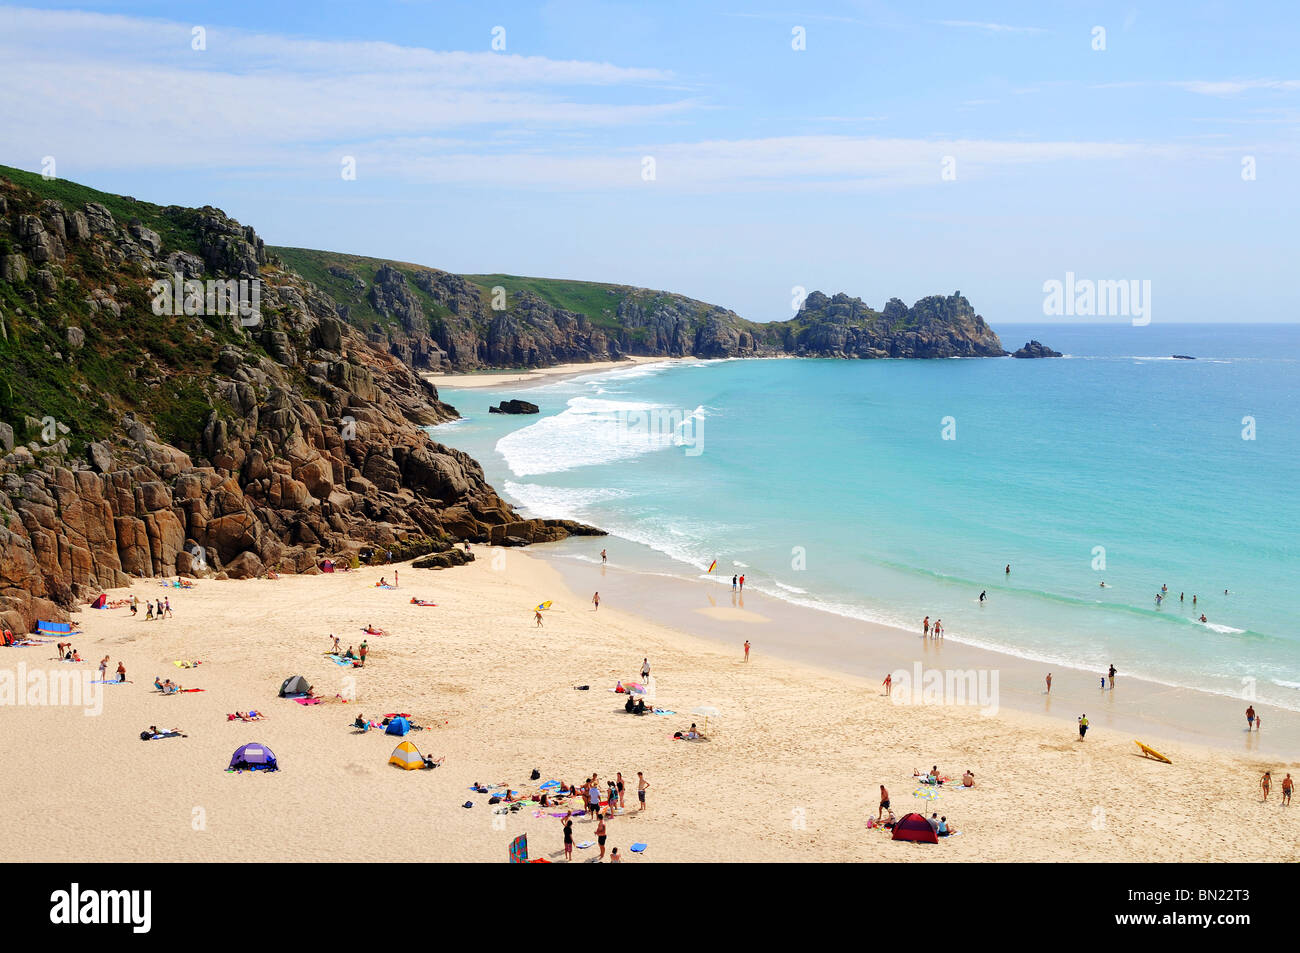 porthcurno beach with logan rock in the distance, porthcurno, cornwall, uk - Stock Image